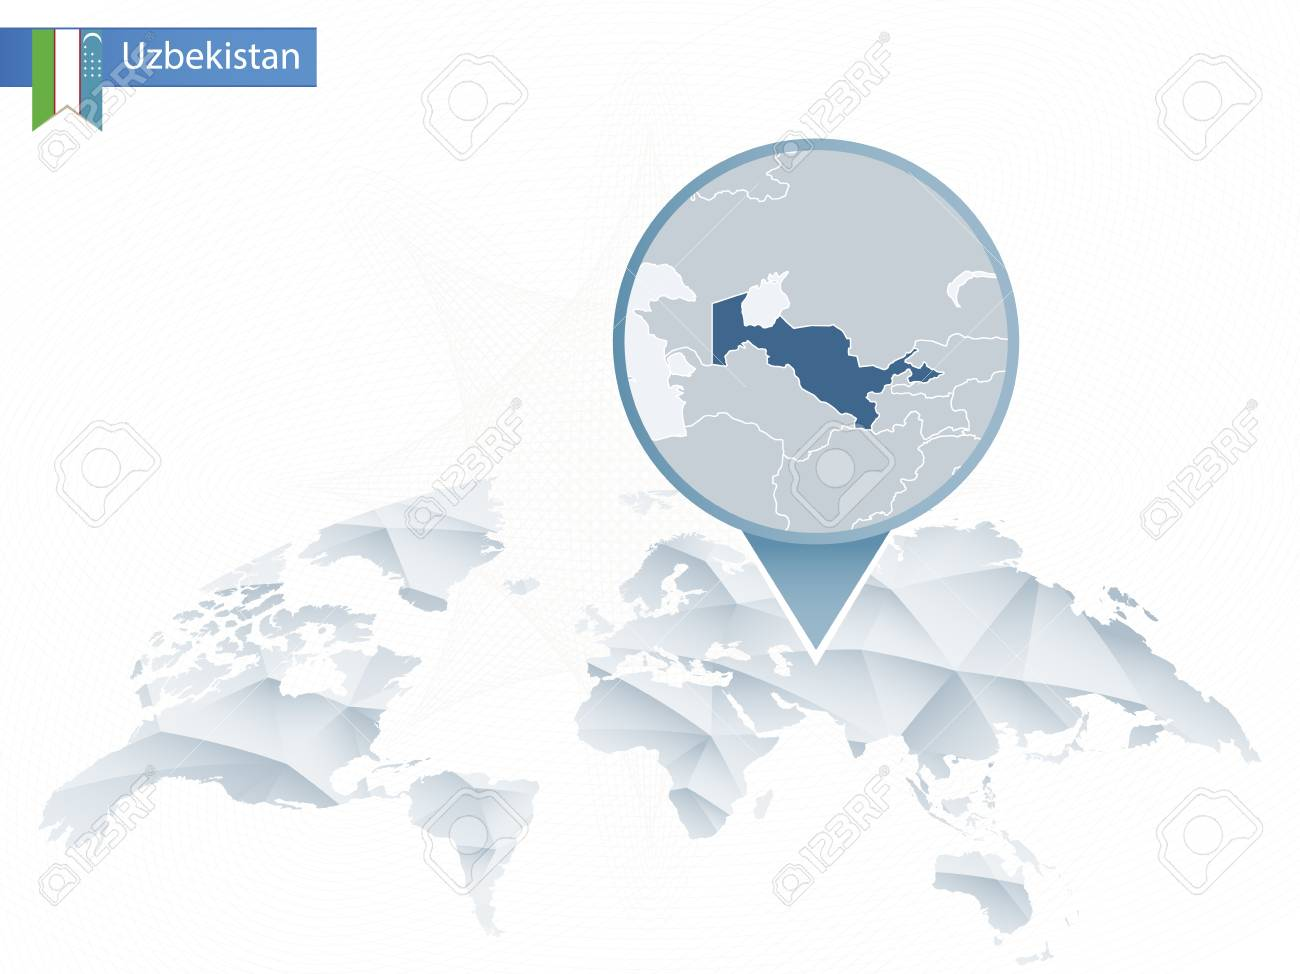 Abstract rounded World Map with pinned detailed Uzbekistan map